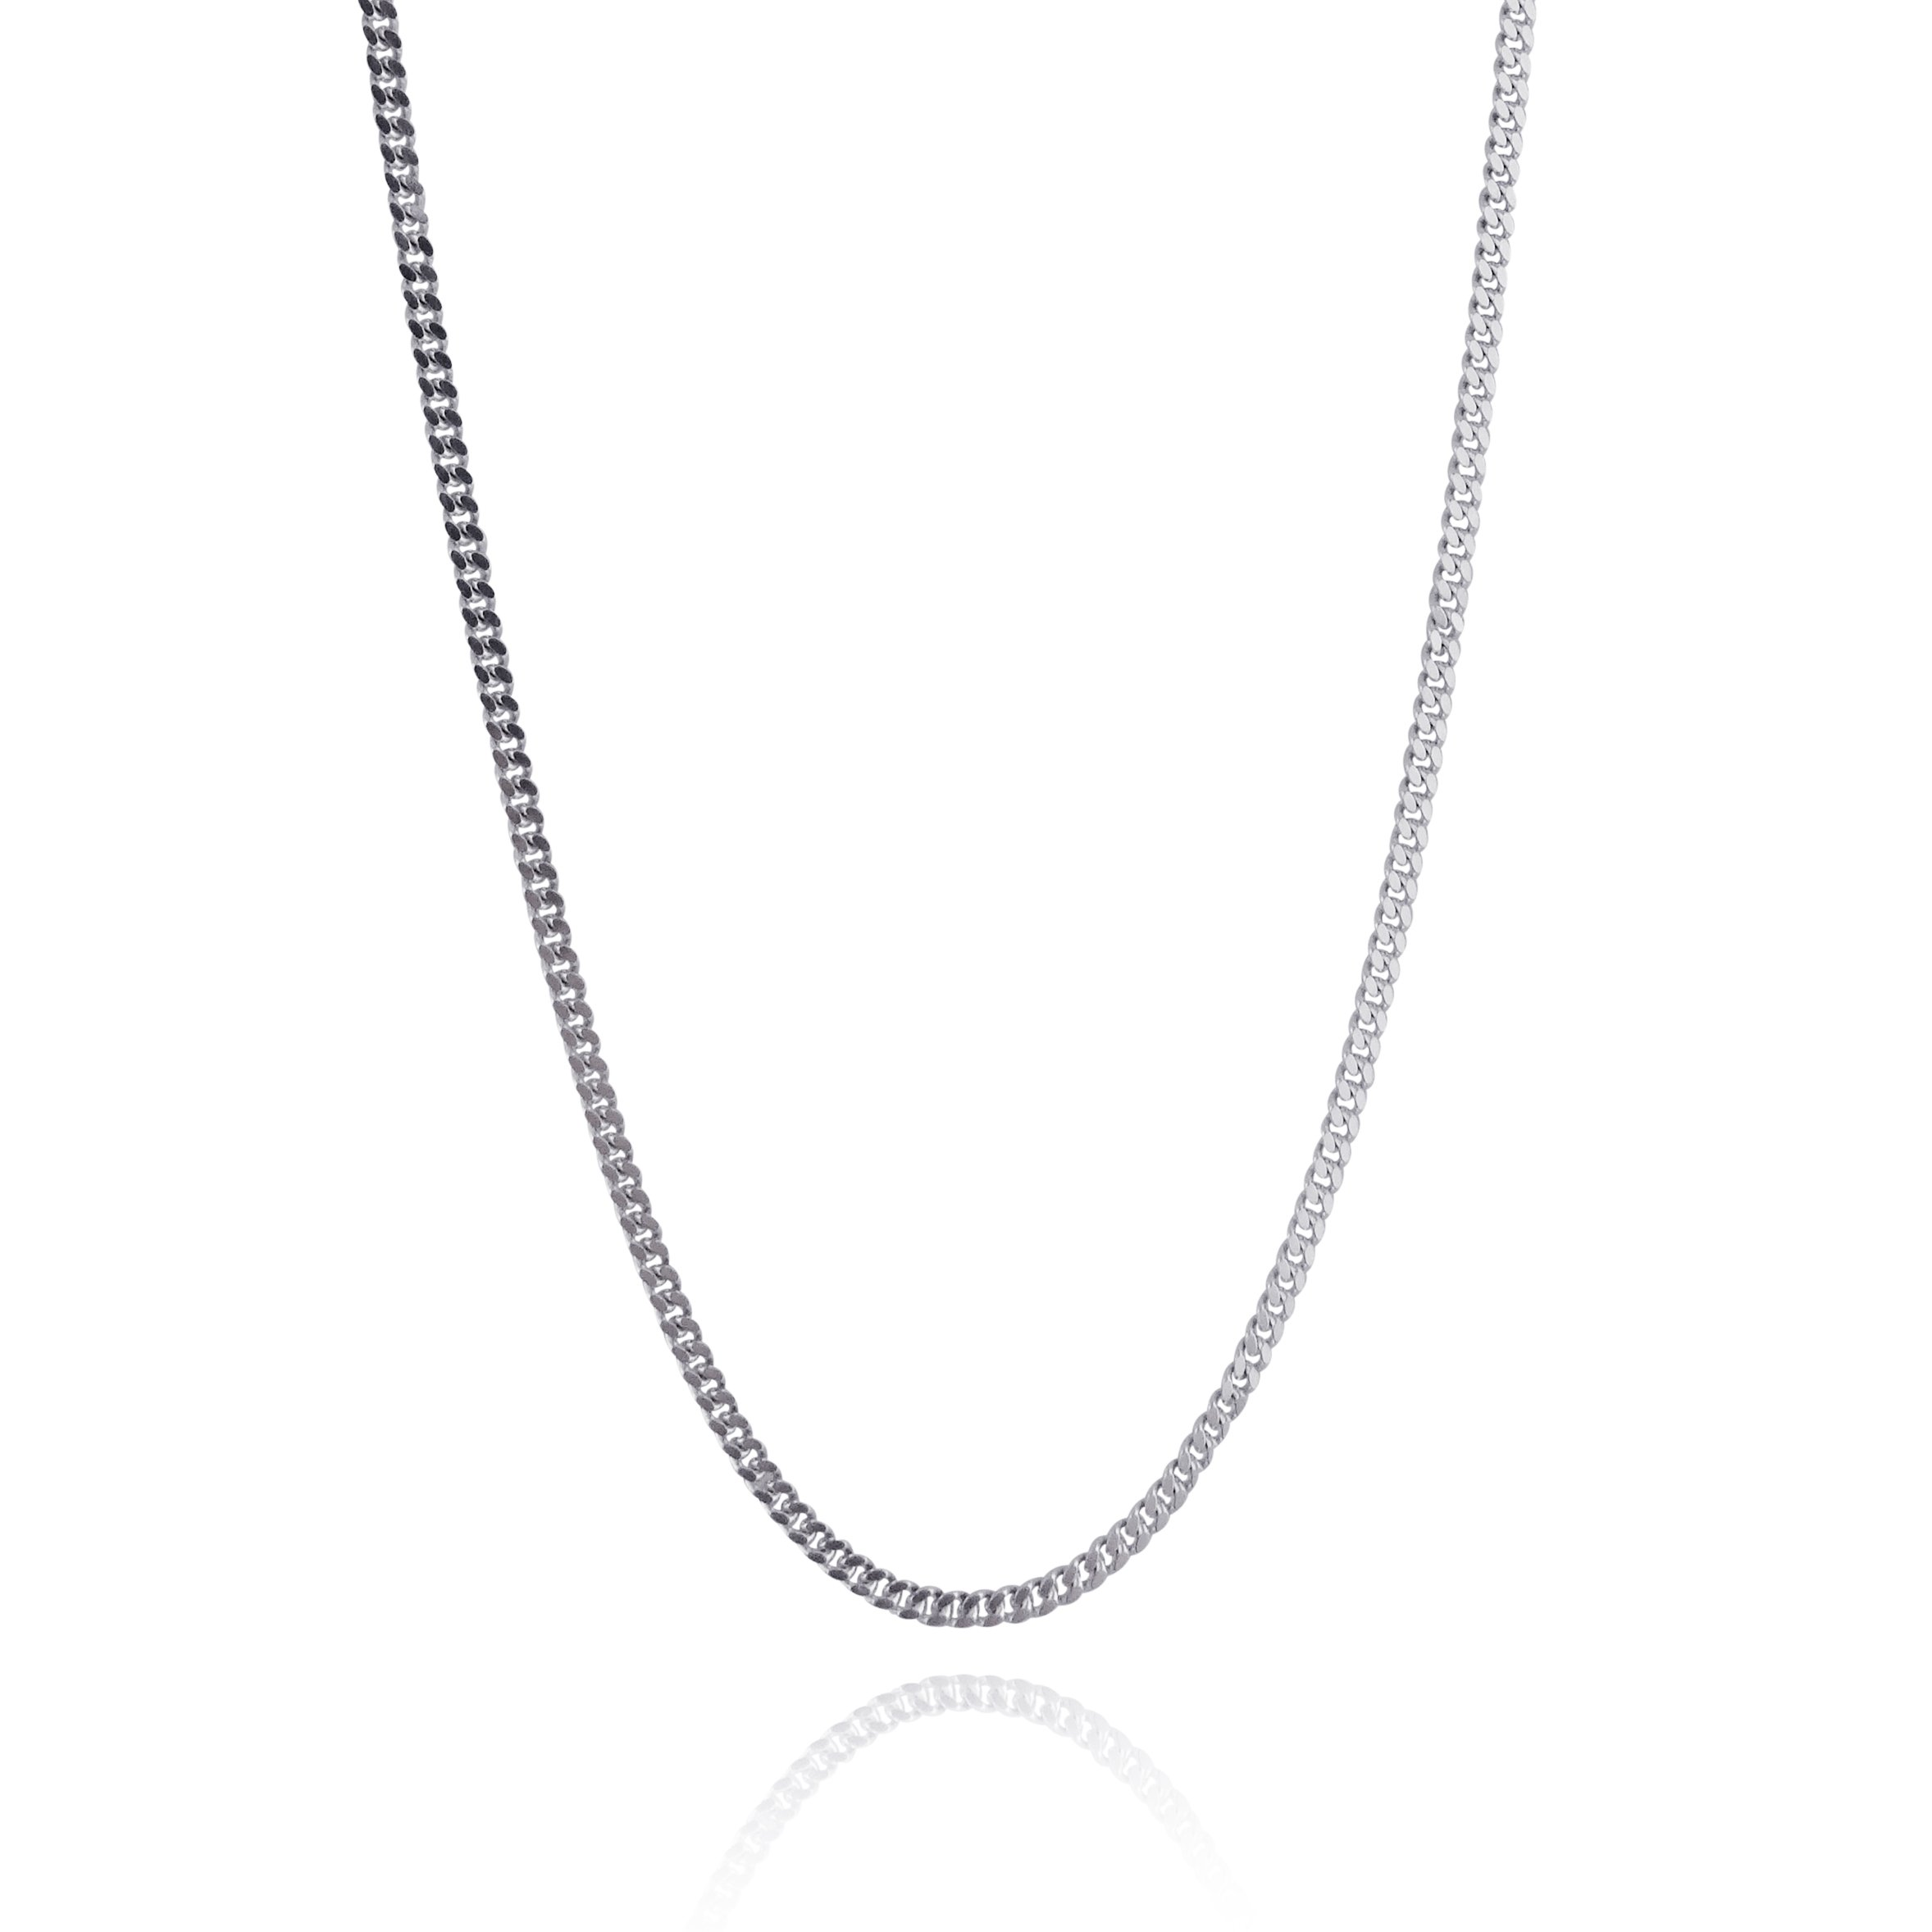 Extra Long Sterling Silver 2mm CURB Chain Link Necklace - 26'', 28'', 30'', 32'', 36'', 38'' (30)